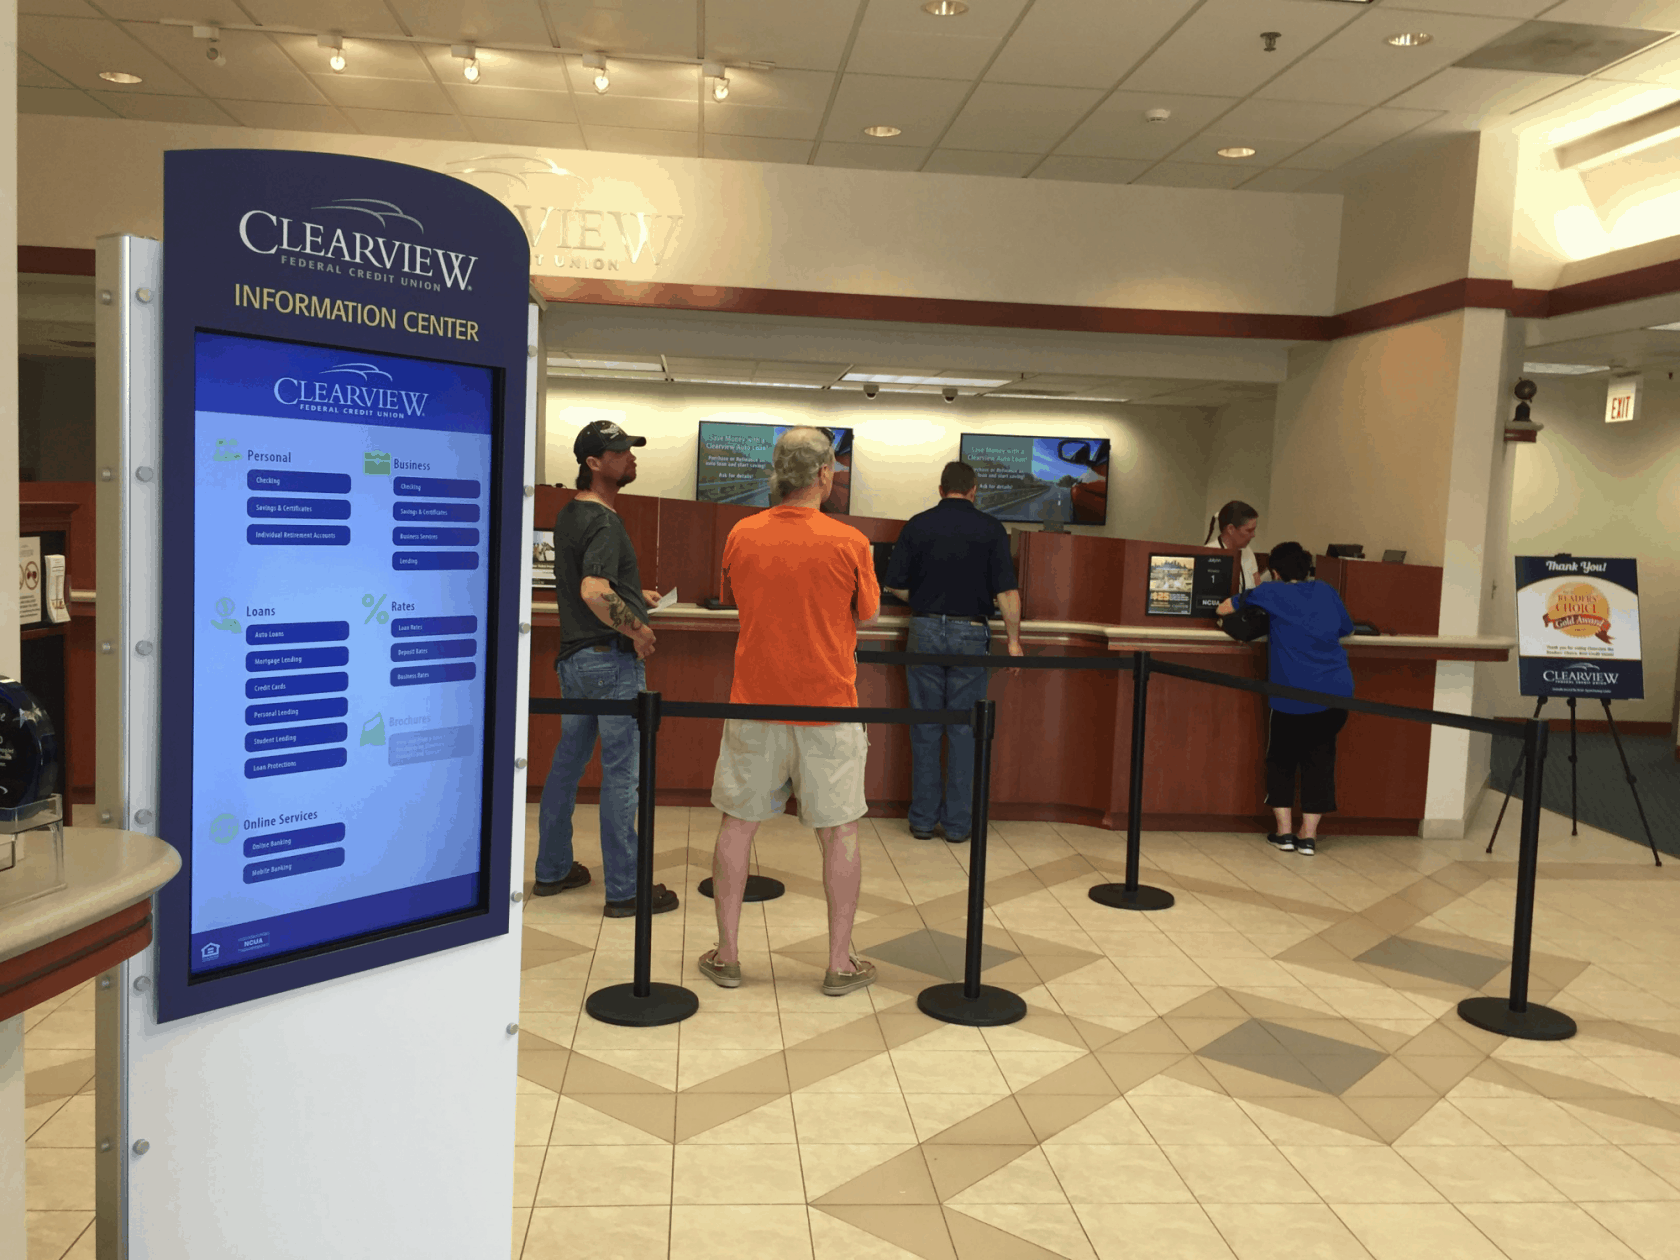 Clearview FCU member information center.